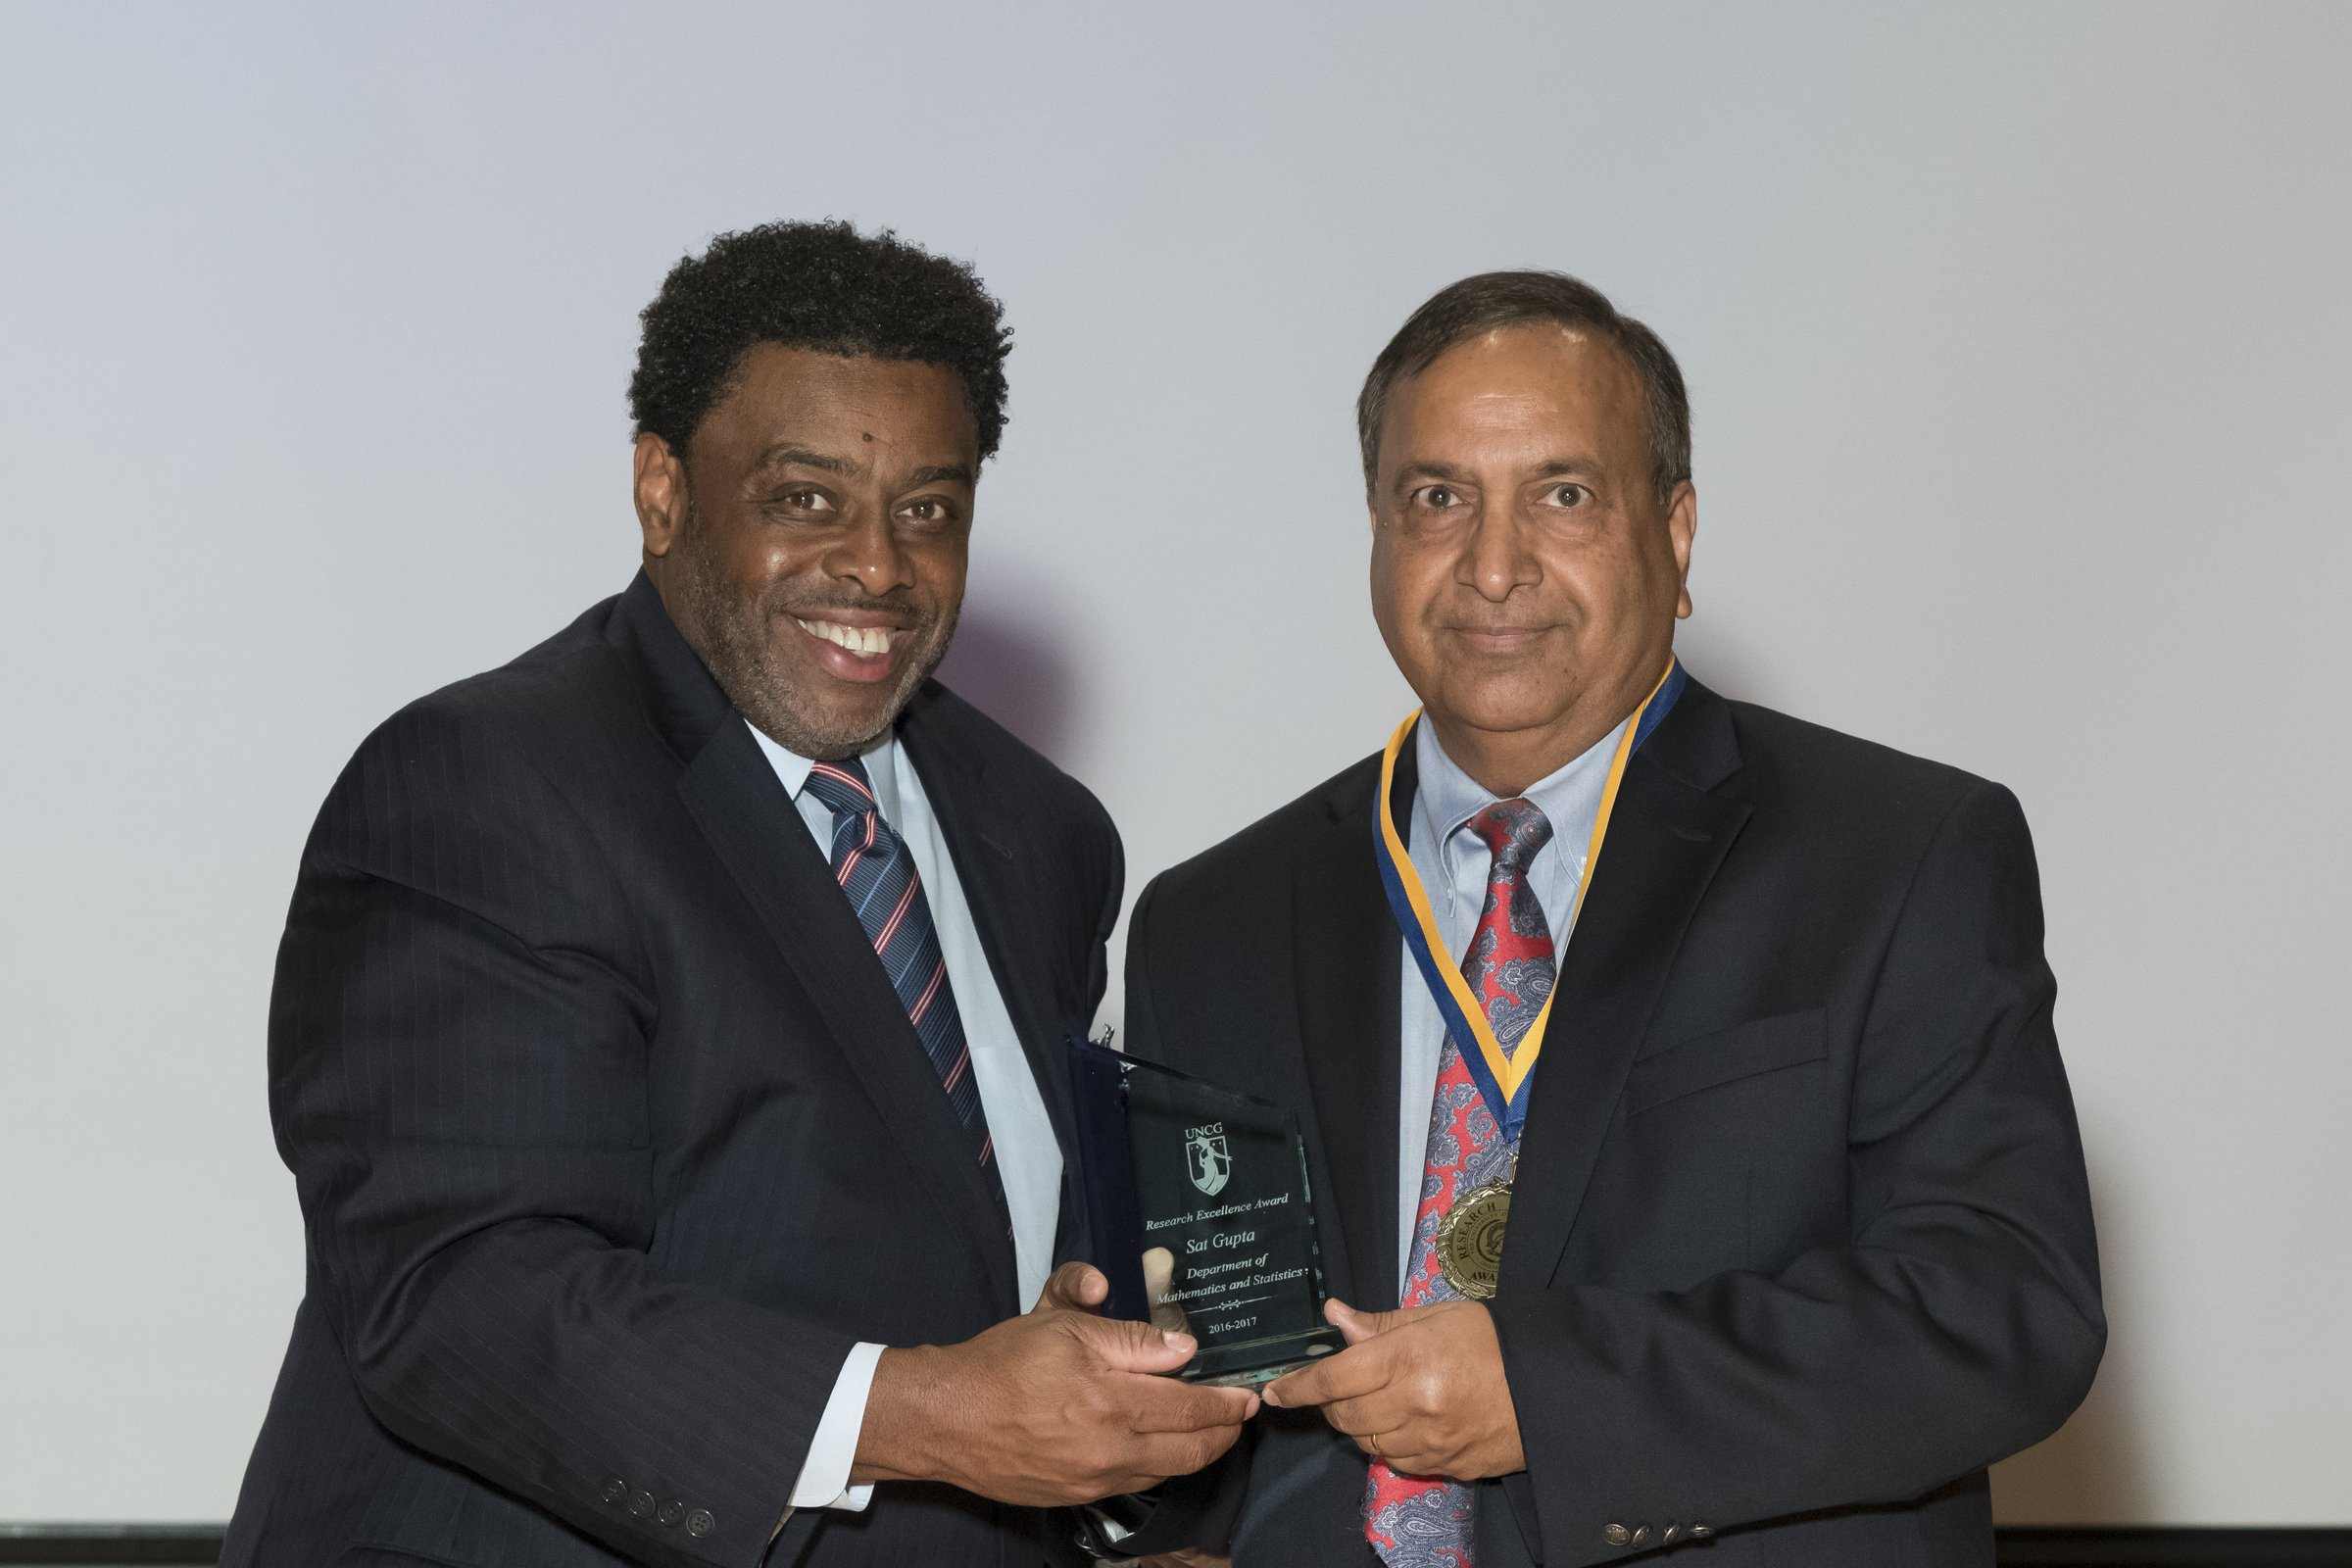 Photo of Chancellor Gilliam with a male award recipient